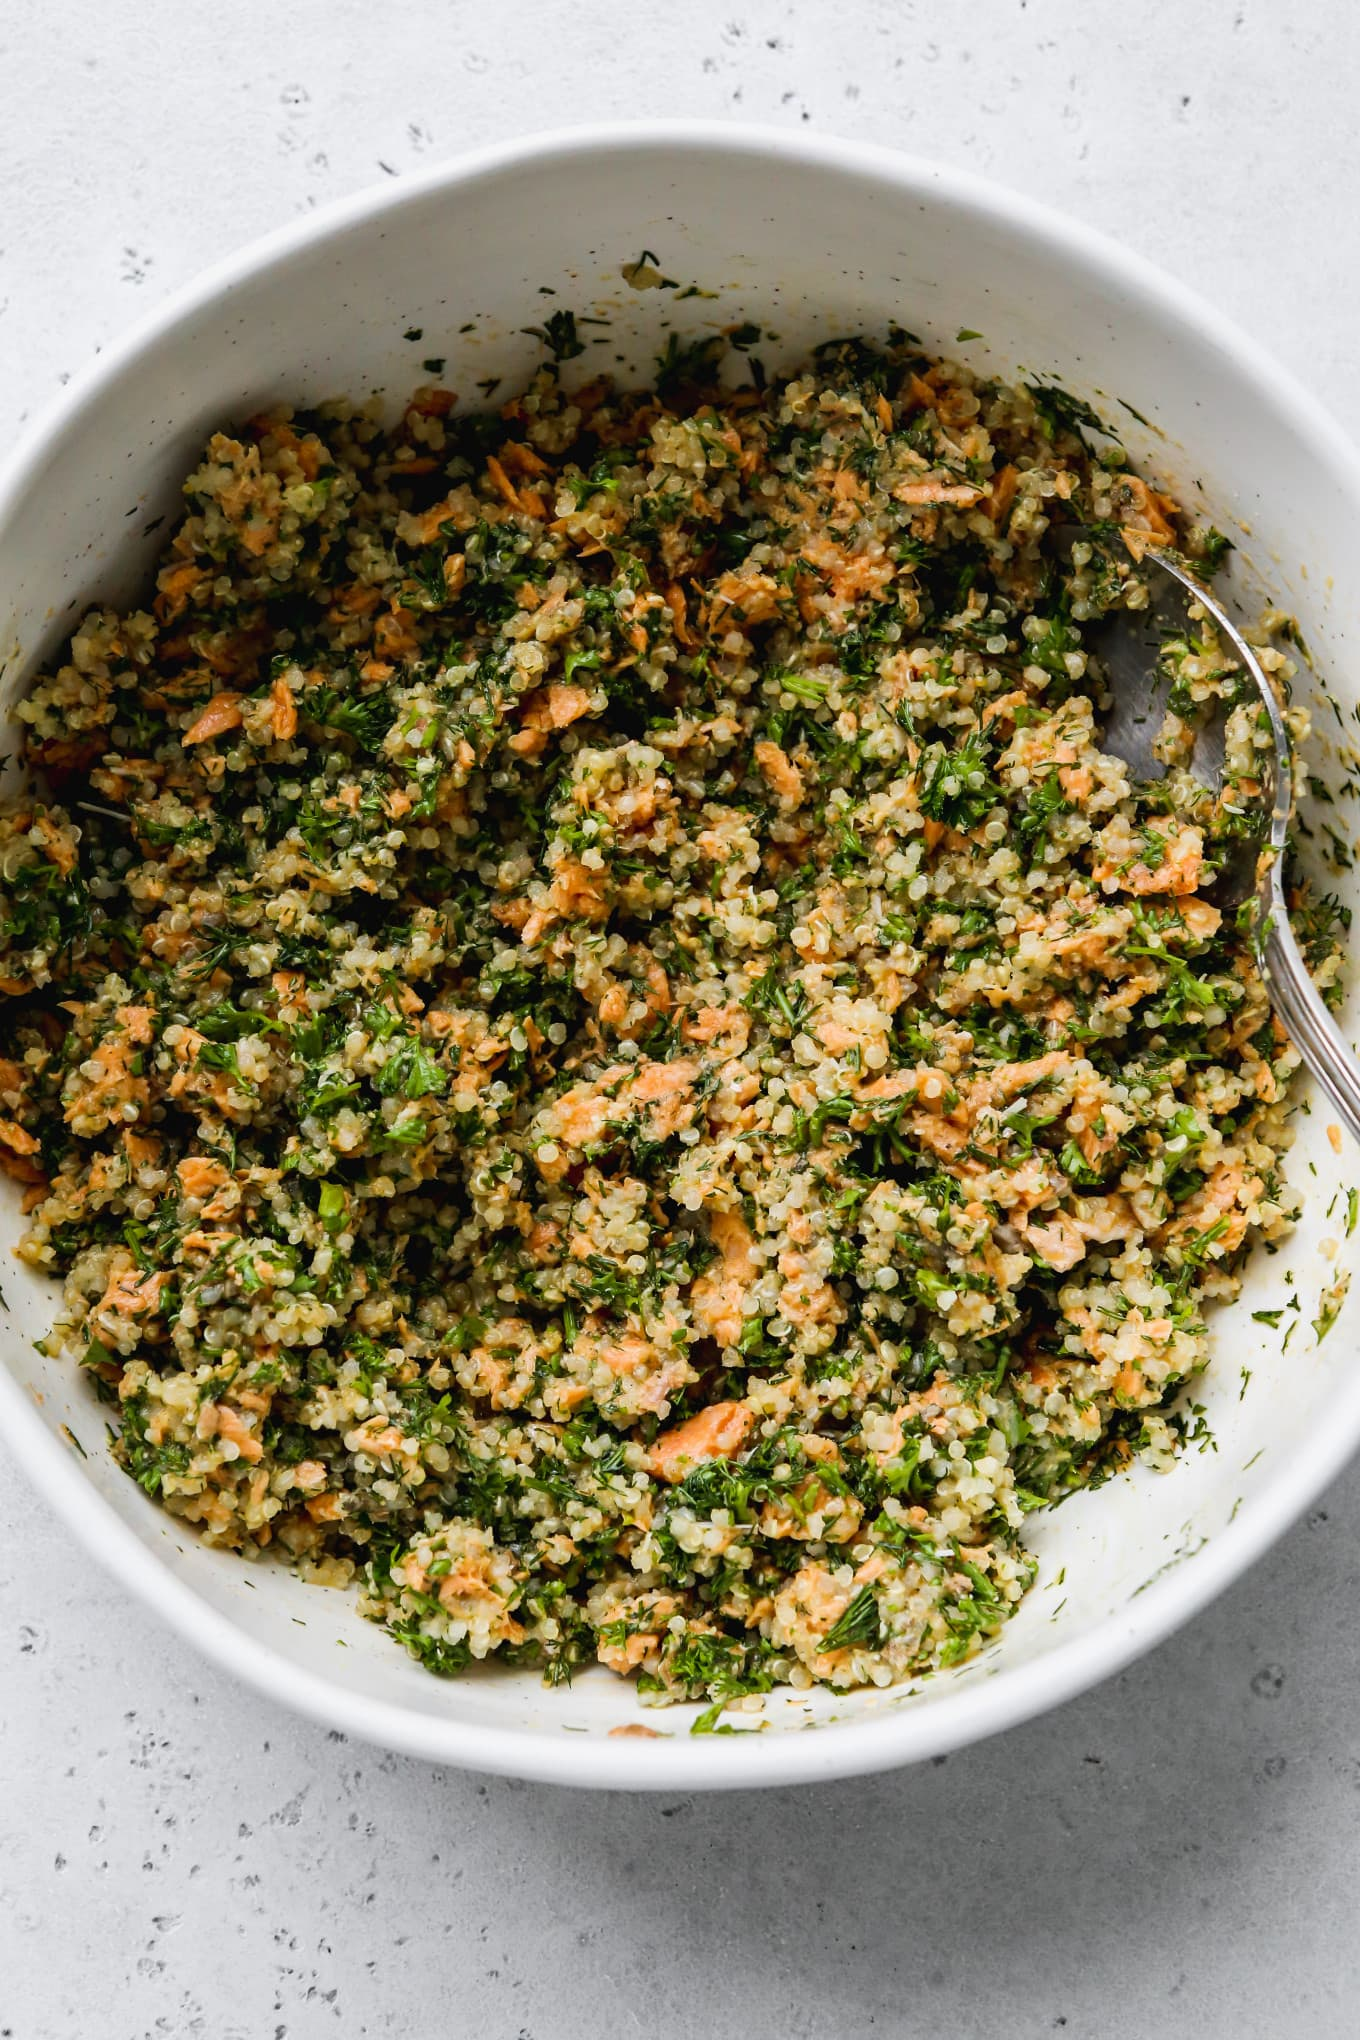 Overhead photo of a large white mixing bowl filled with chopped herbs, quinoa, and canned salmon mixed together.